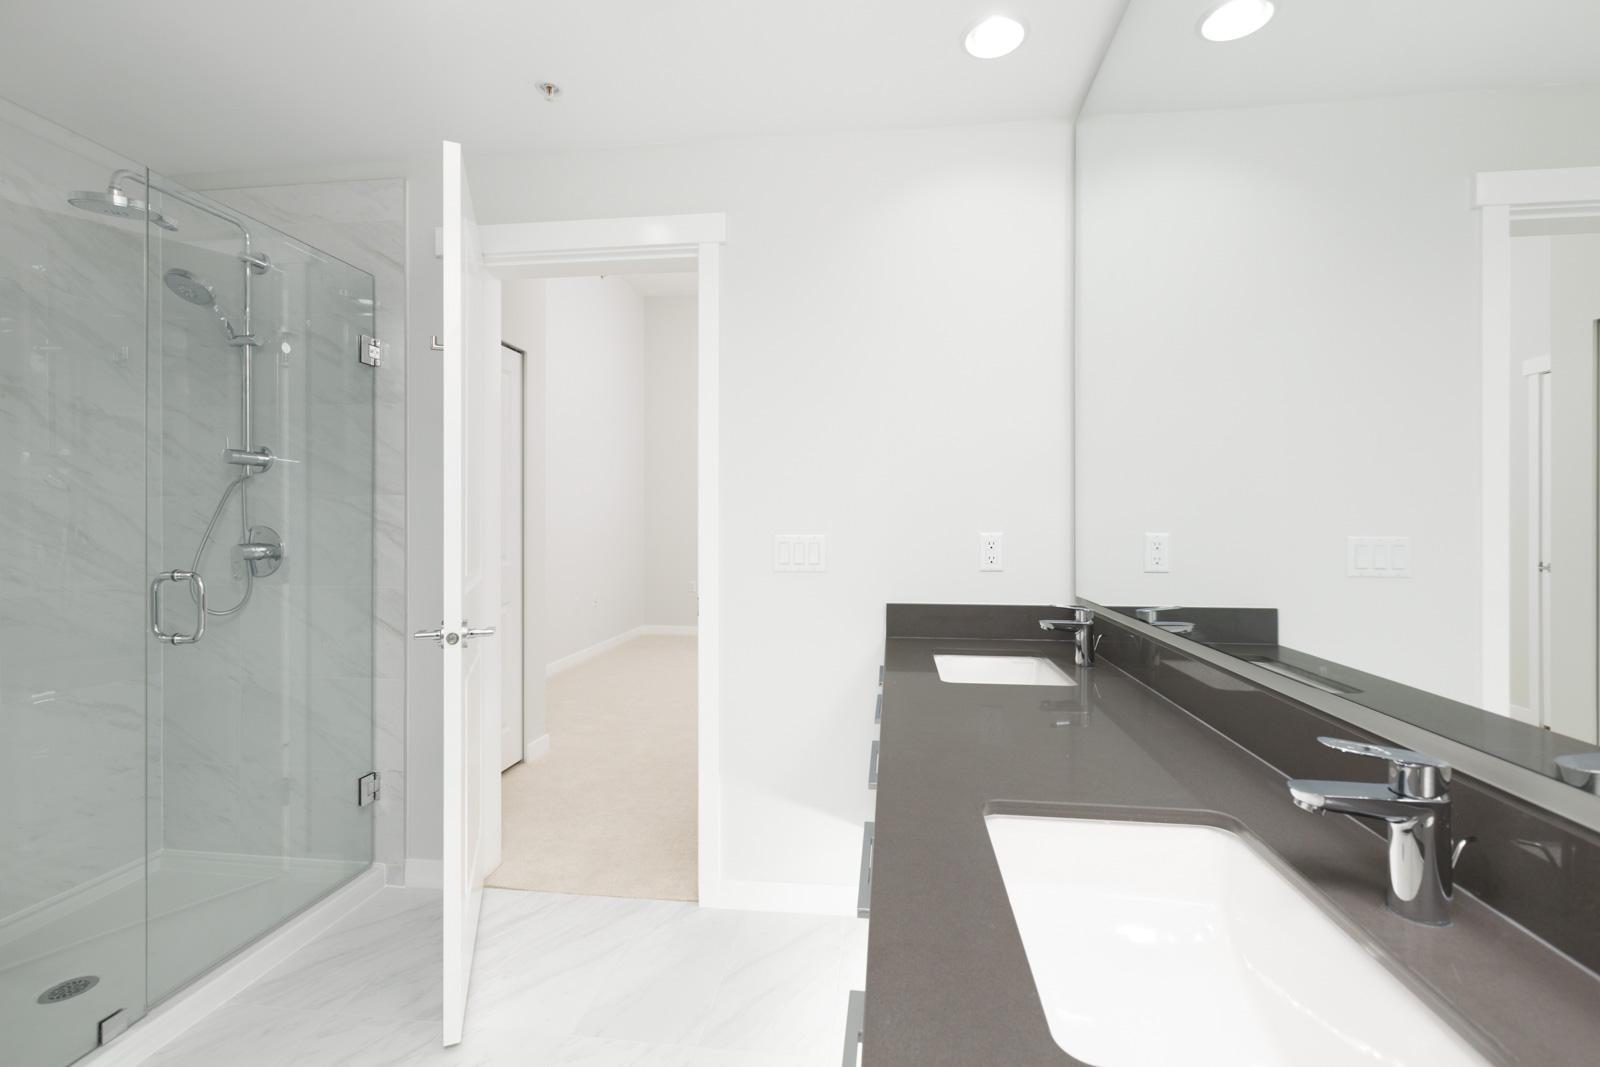 bathroom with open door counter and mirror to ceiling